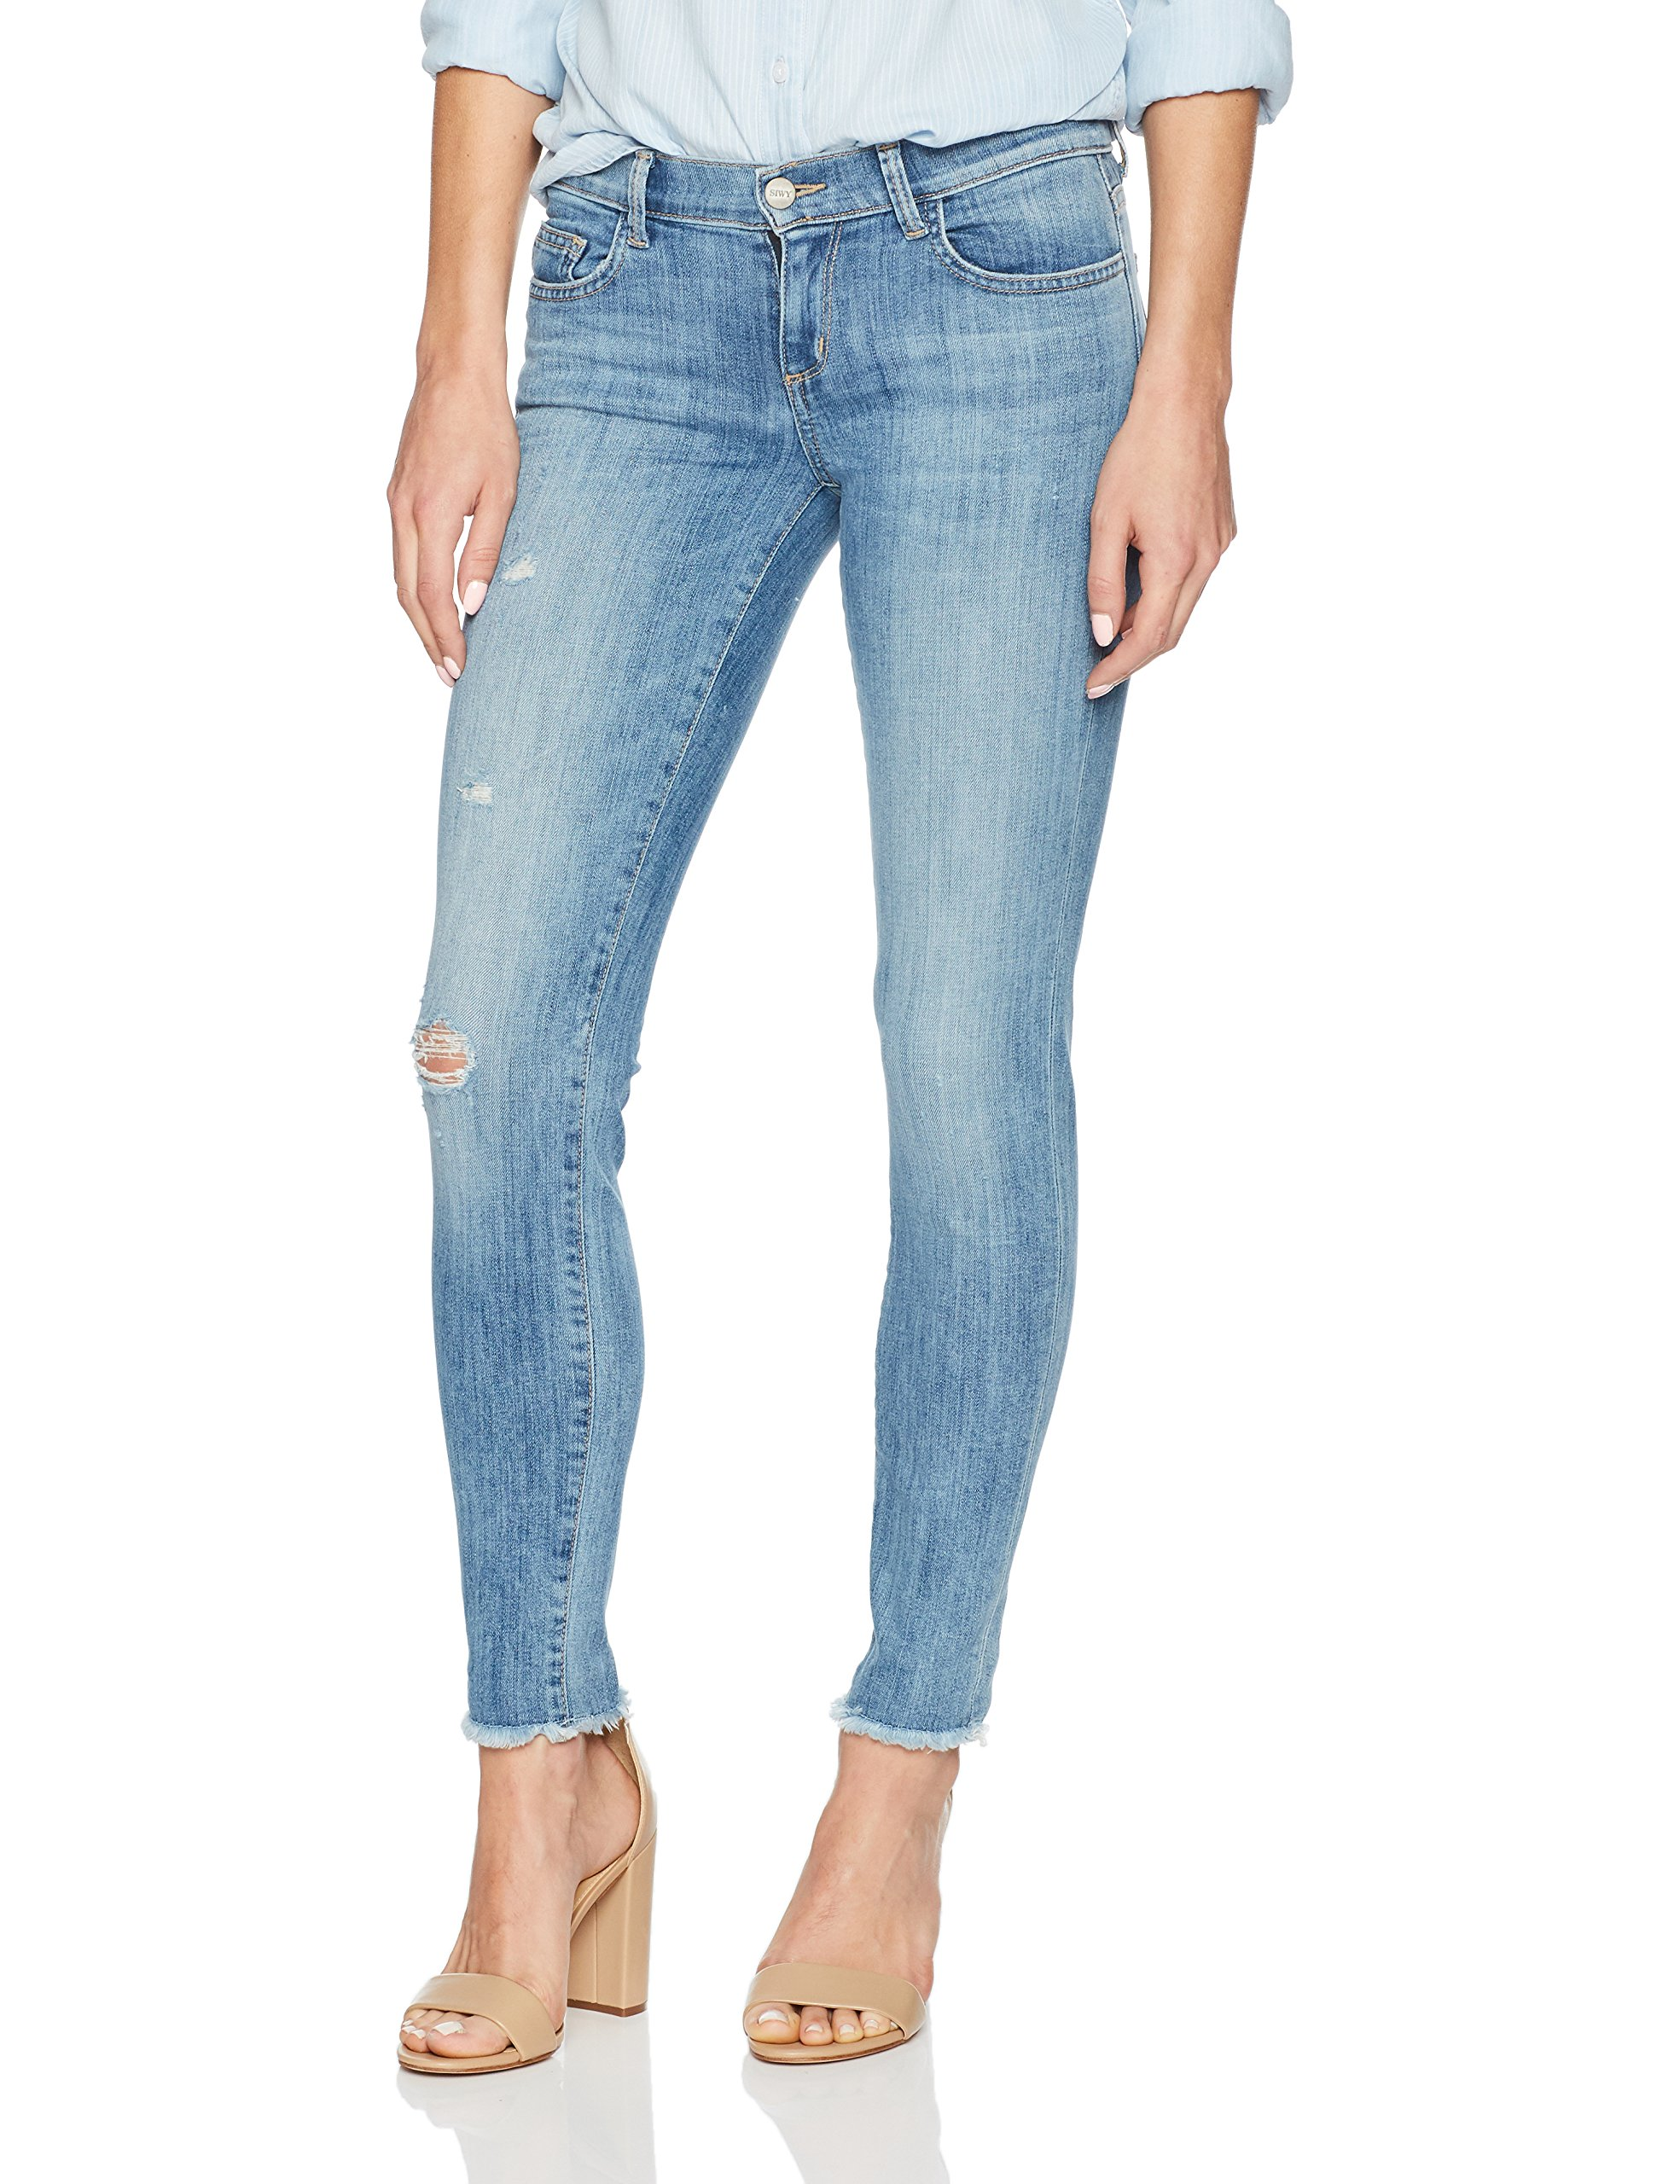 Siwy Women's Sara Low Rise Skinny Jeans, The Look of Love, 30